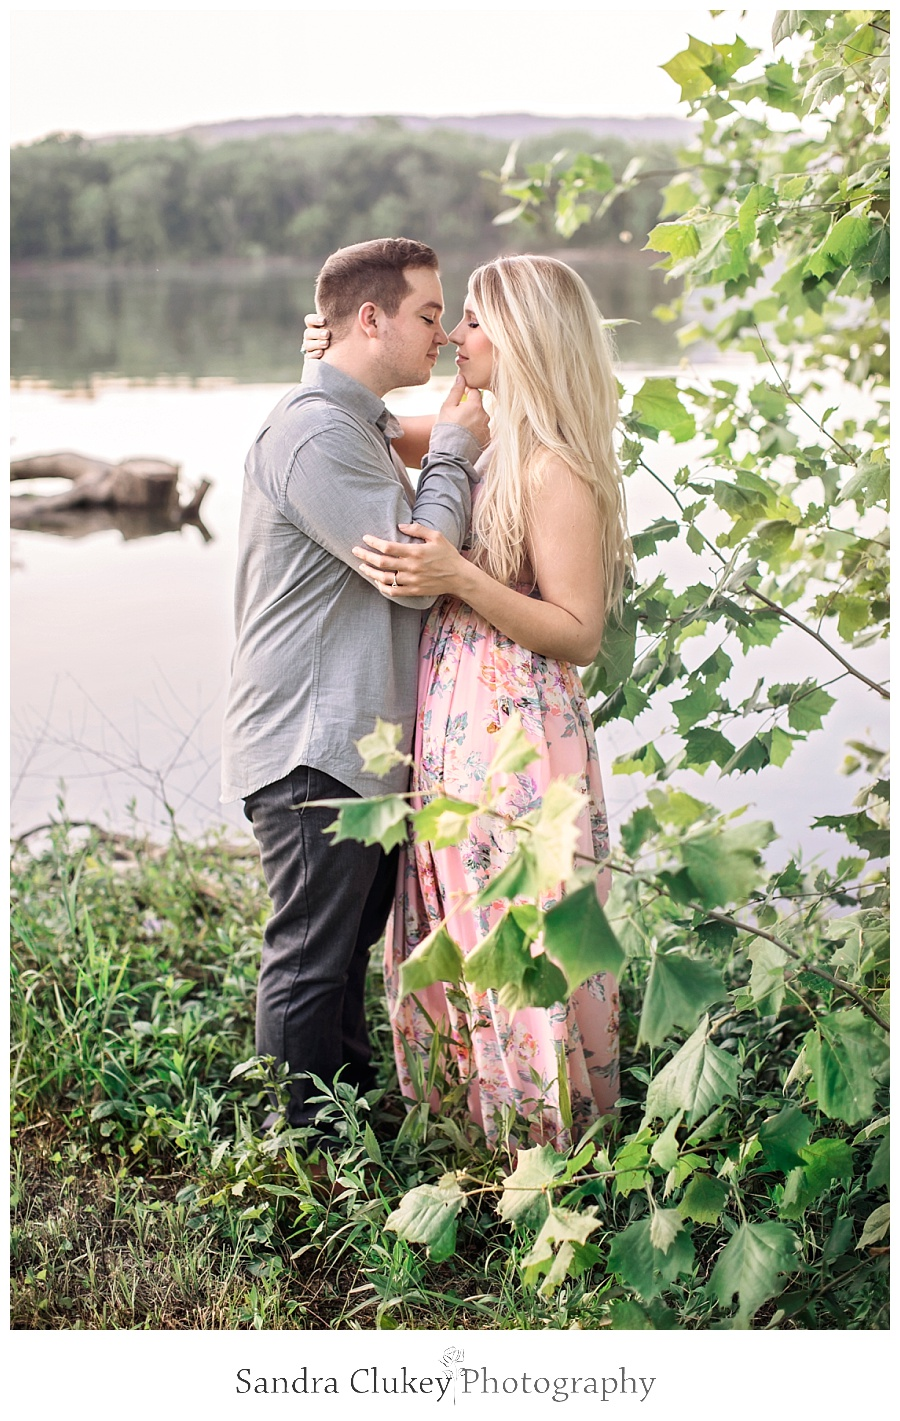 Tender moment for couple by river